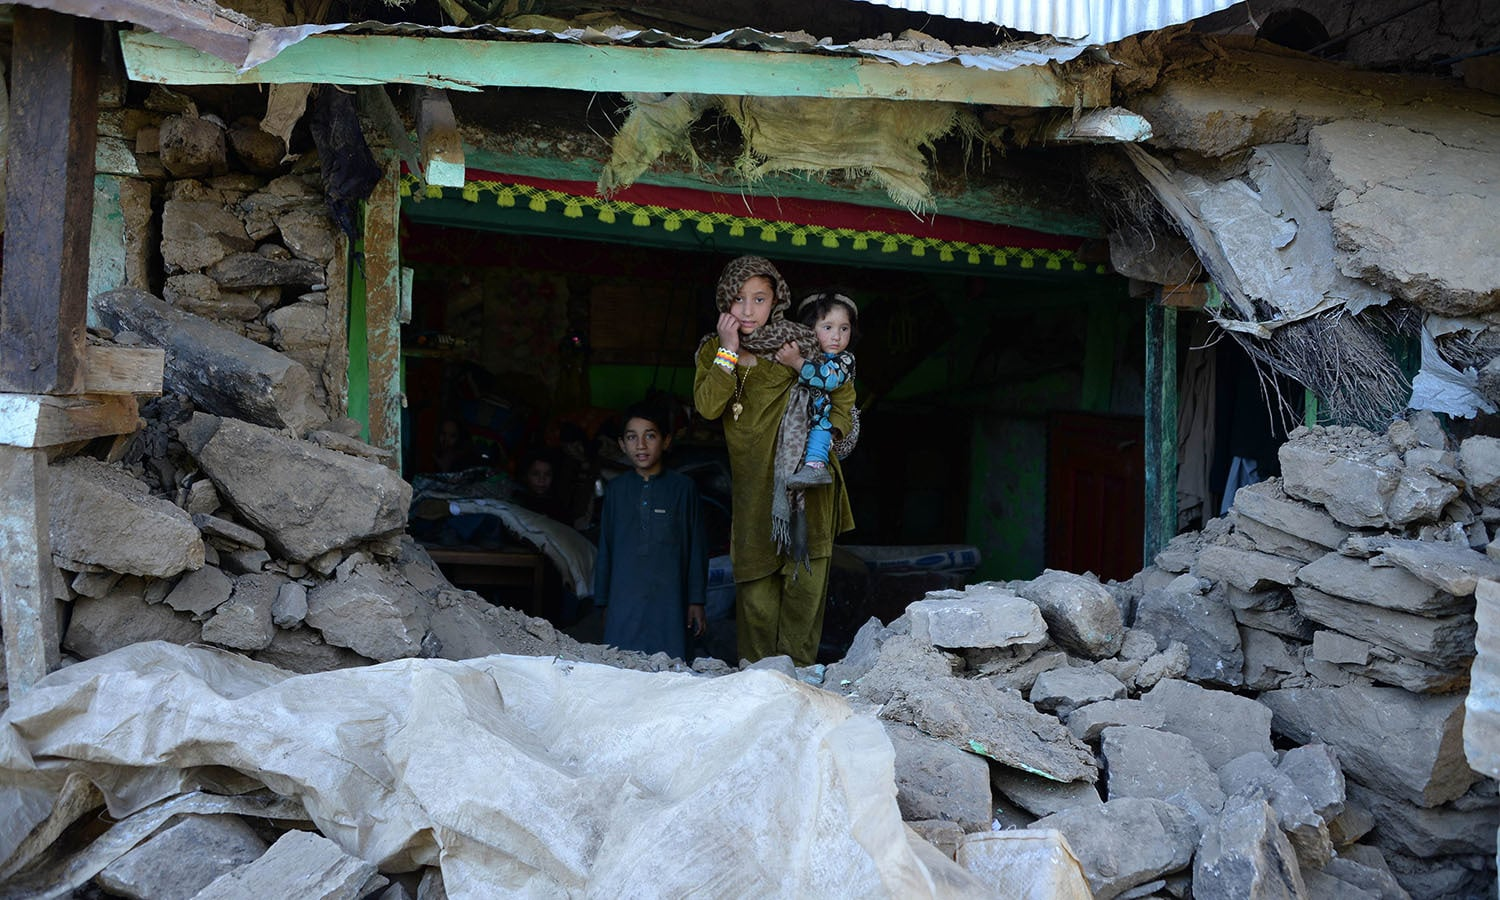 Earthquake survivors take refuge at a damaged house in the quake-hit Shangla district in Pakistan's Khyber Pakhtunkhwa province. — AFP